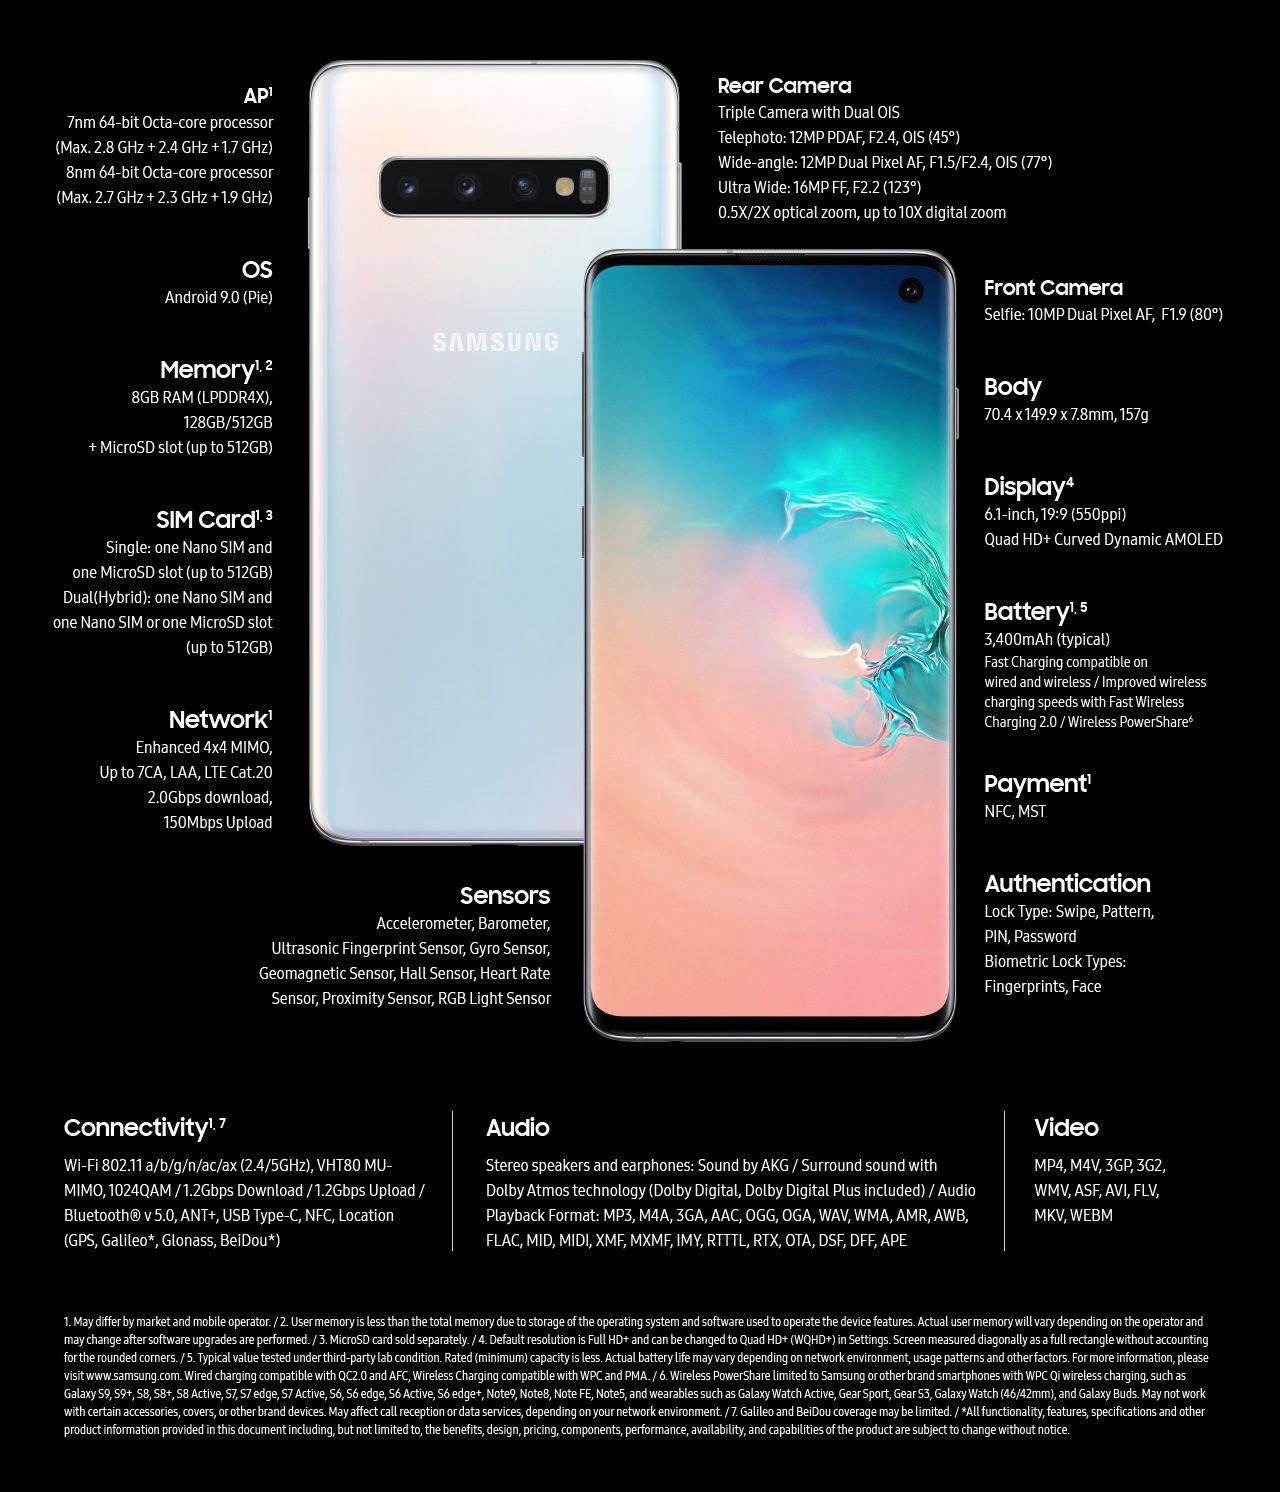 Samsung Galaxy S10: Technical Specifications 2